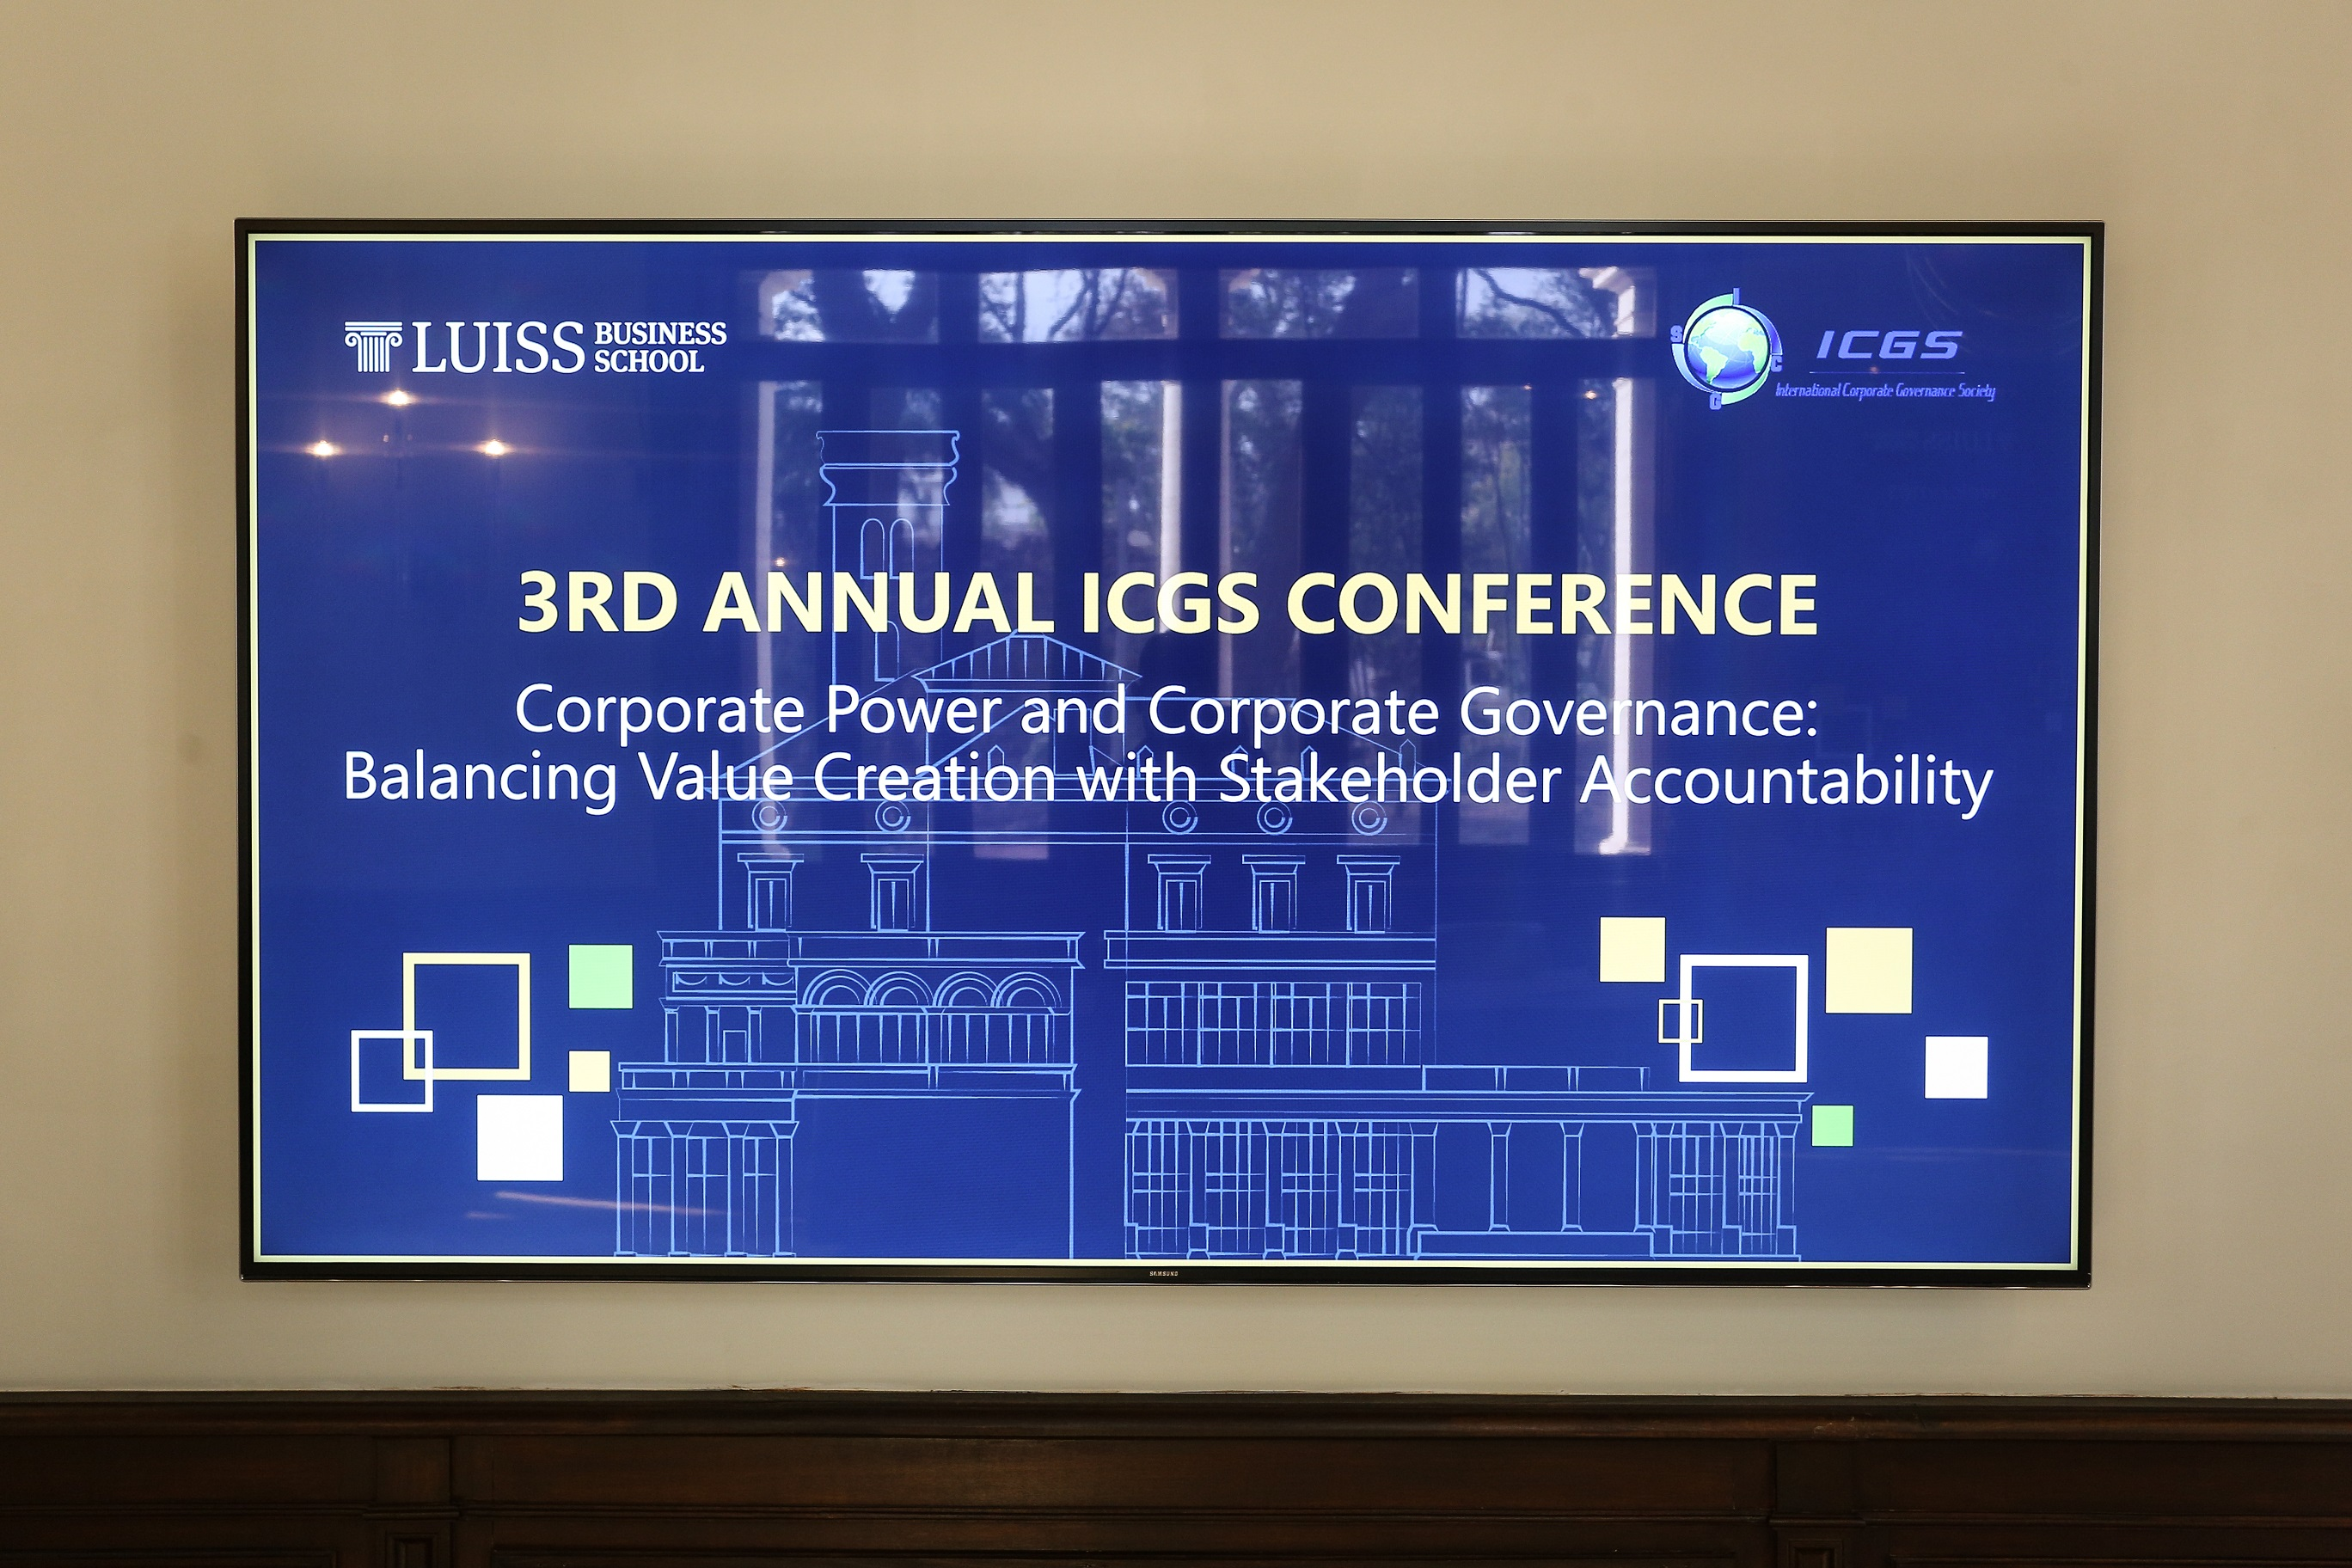 3RD Annual ICGS Conference LBS Villa Blanc 01092017